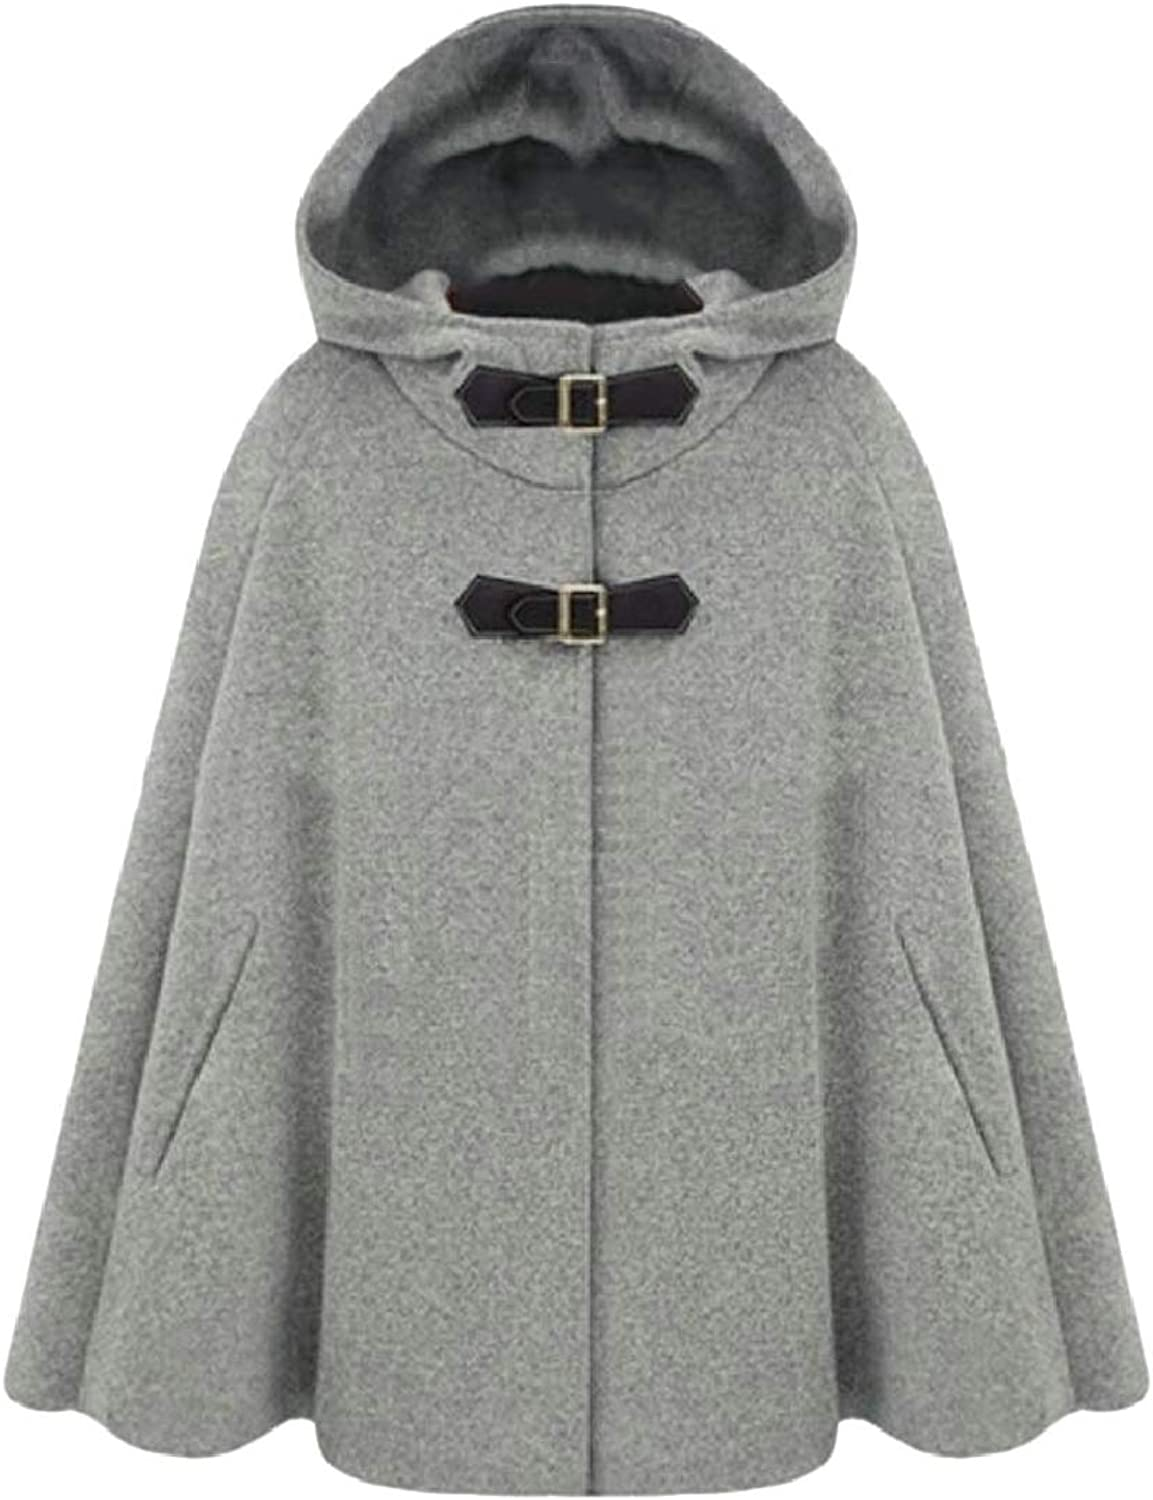 PujinggeCA Woman Winter Solid Cape Cloak Poncho Outwear Trench Coat Overcoat